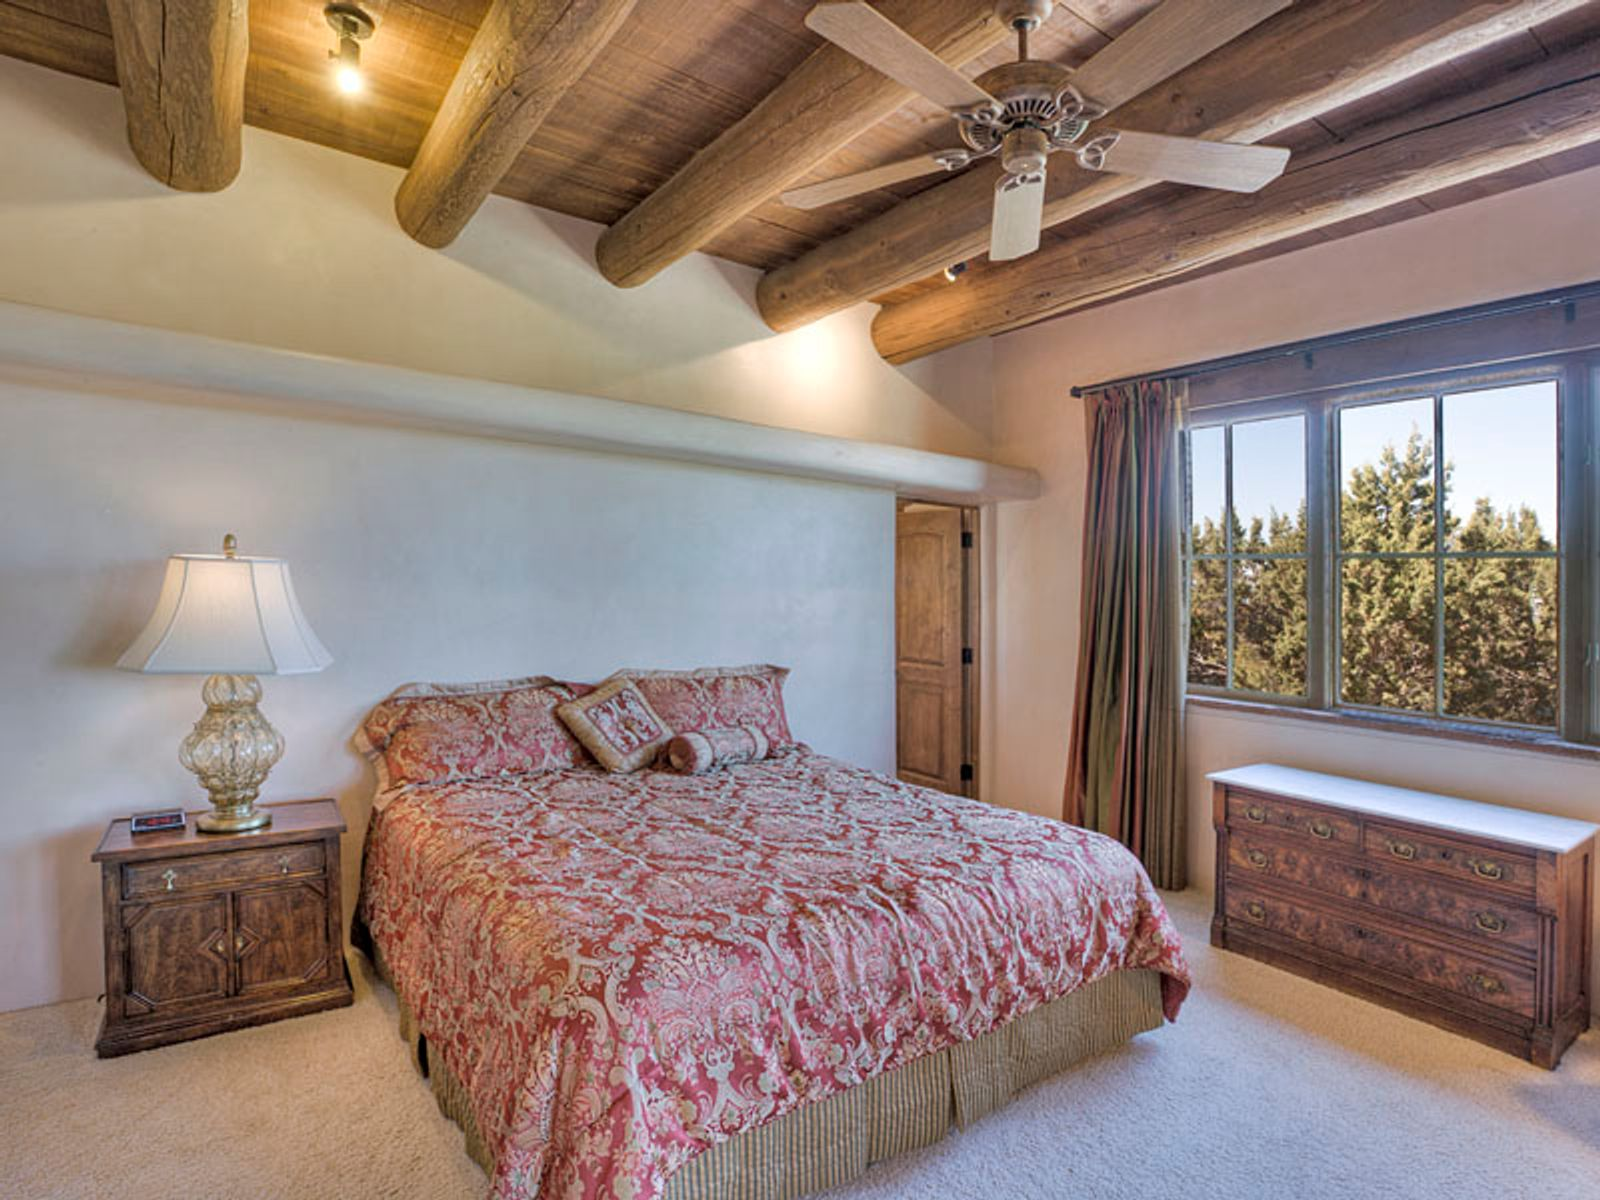 Private and spacious guest bedroom